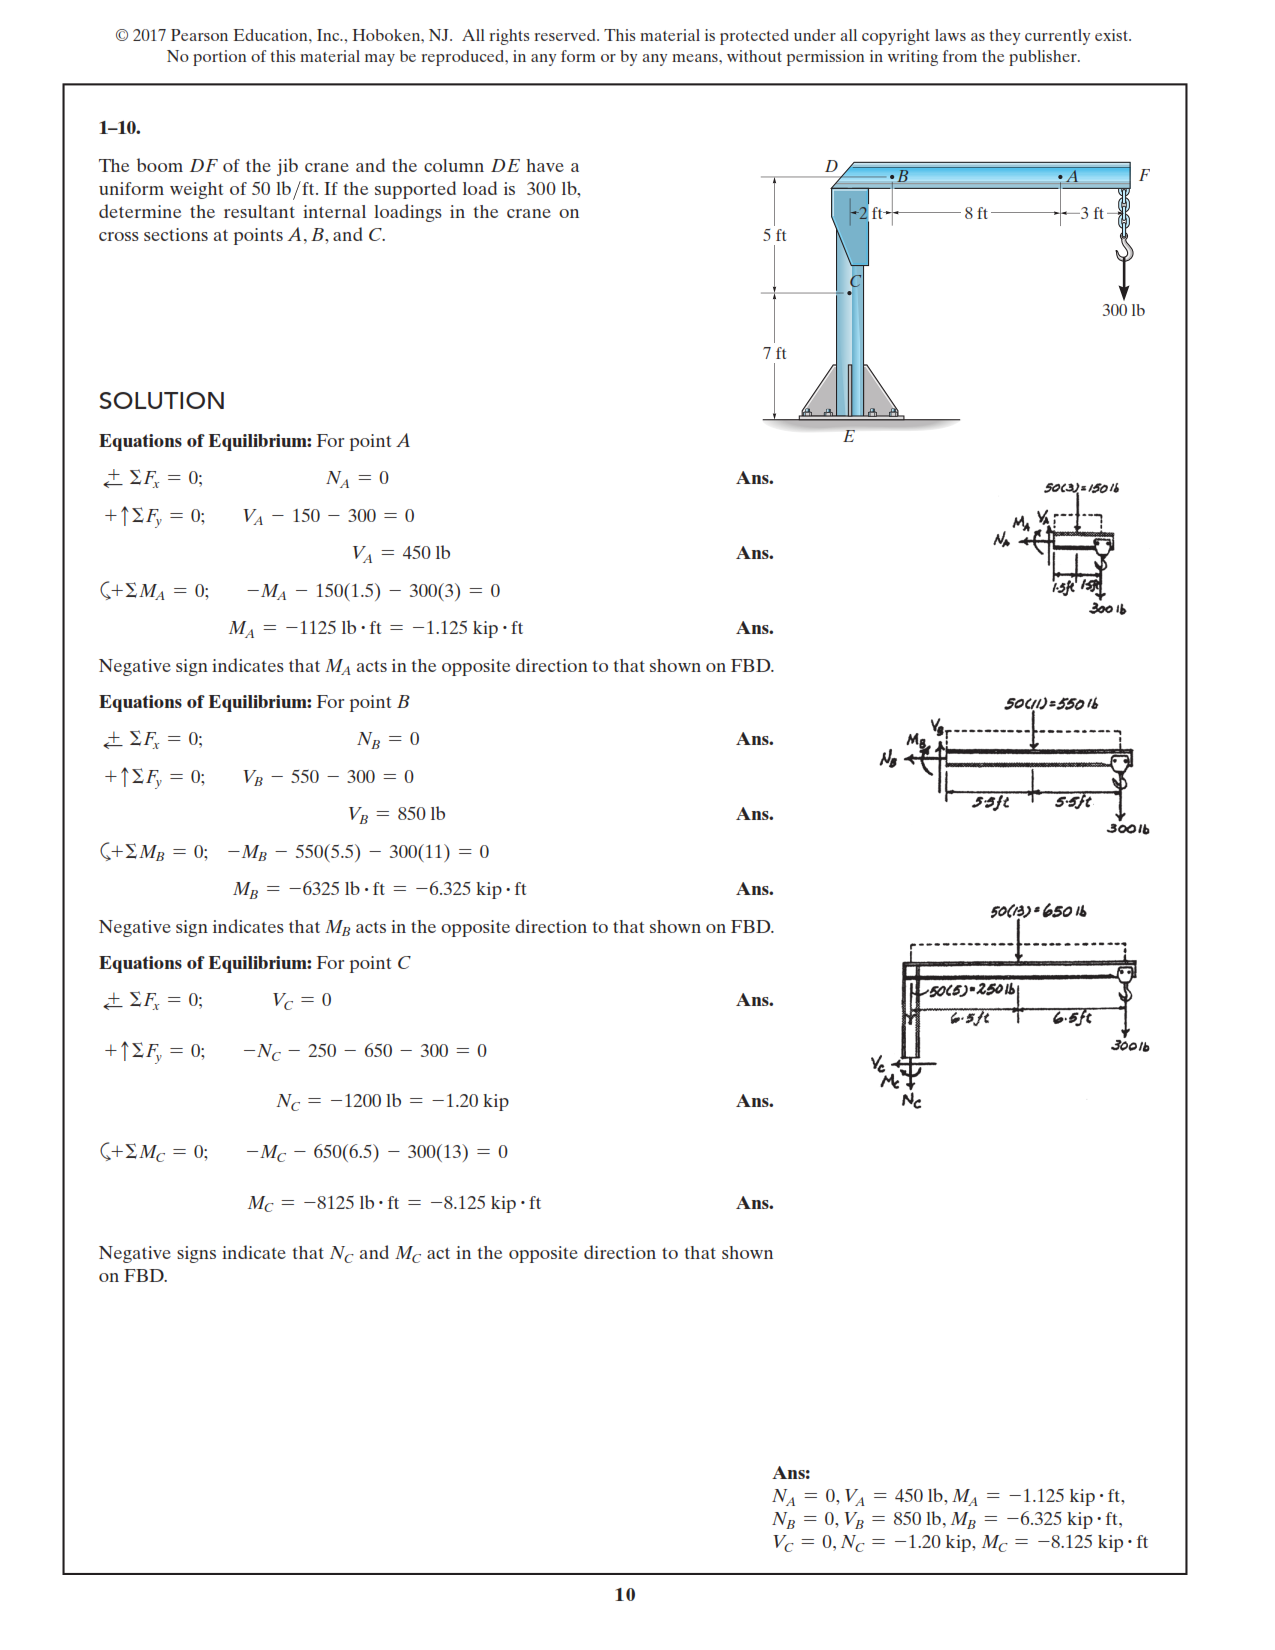 download free solution manual of Mechanics of materials by Hibbeler tenth (10th ) edition book in pdf format